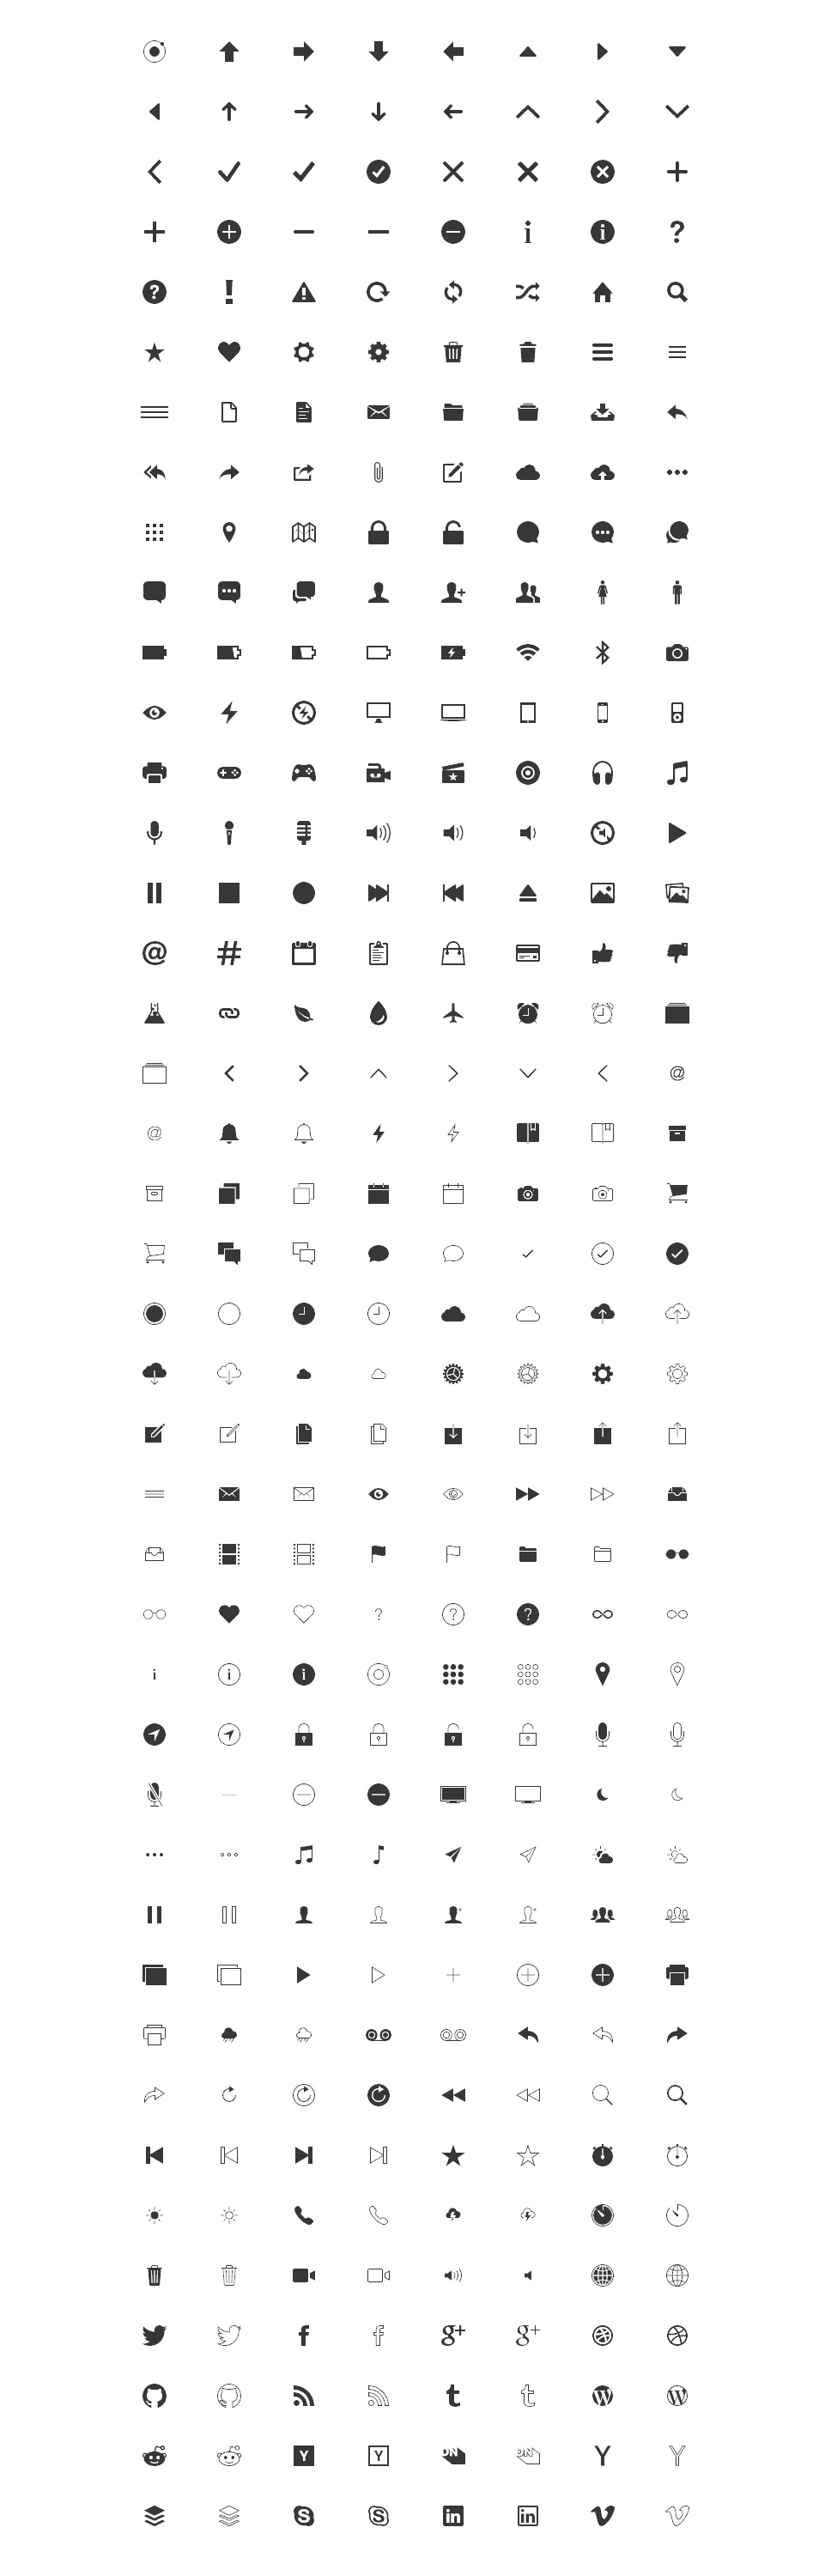 Free Icons for Web and User Interface Design 22